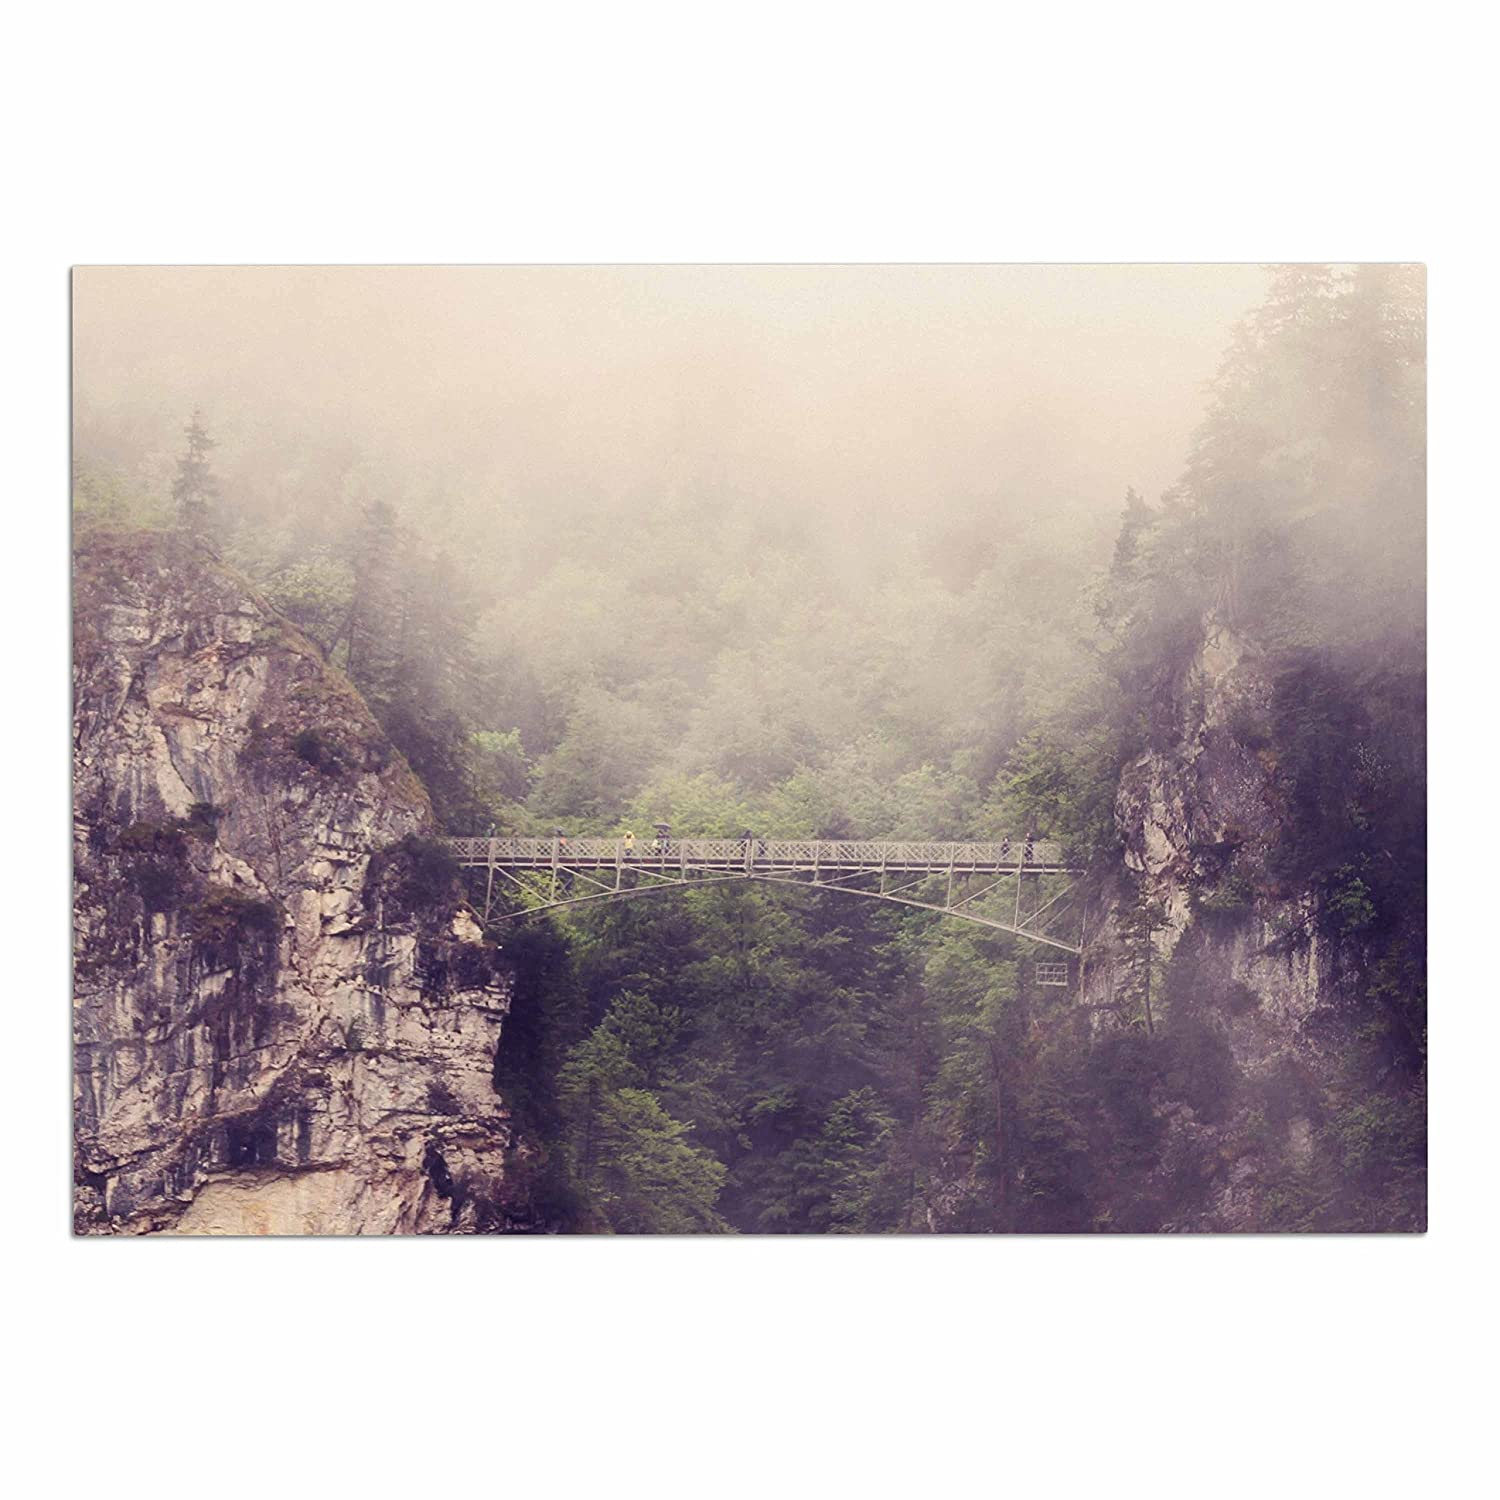 KESS InHouse SC4010ADM02 Sylvia Coomes Foggy Mountain Landscape Brown Green Dog Place Mat, 24  x 15